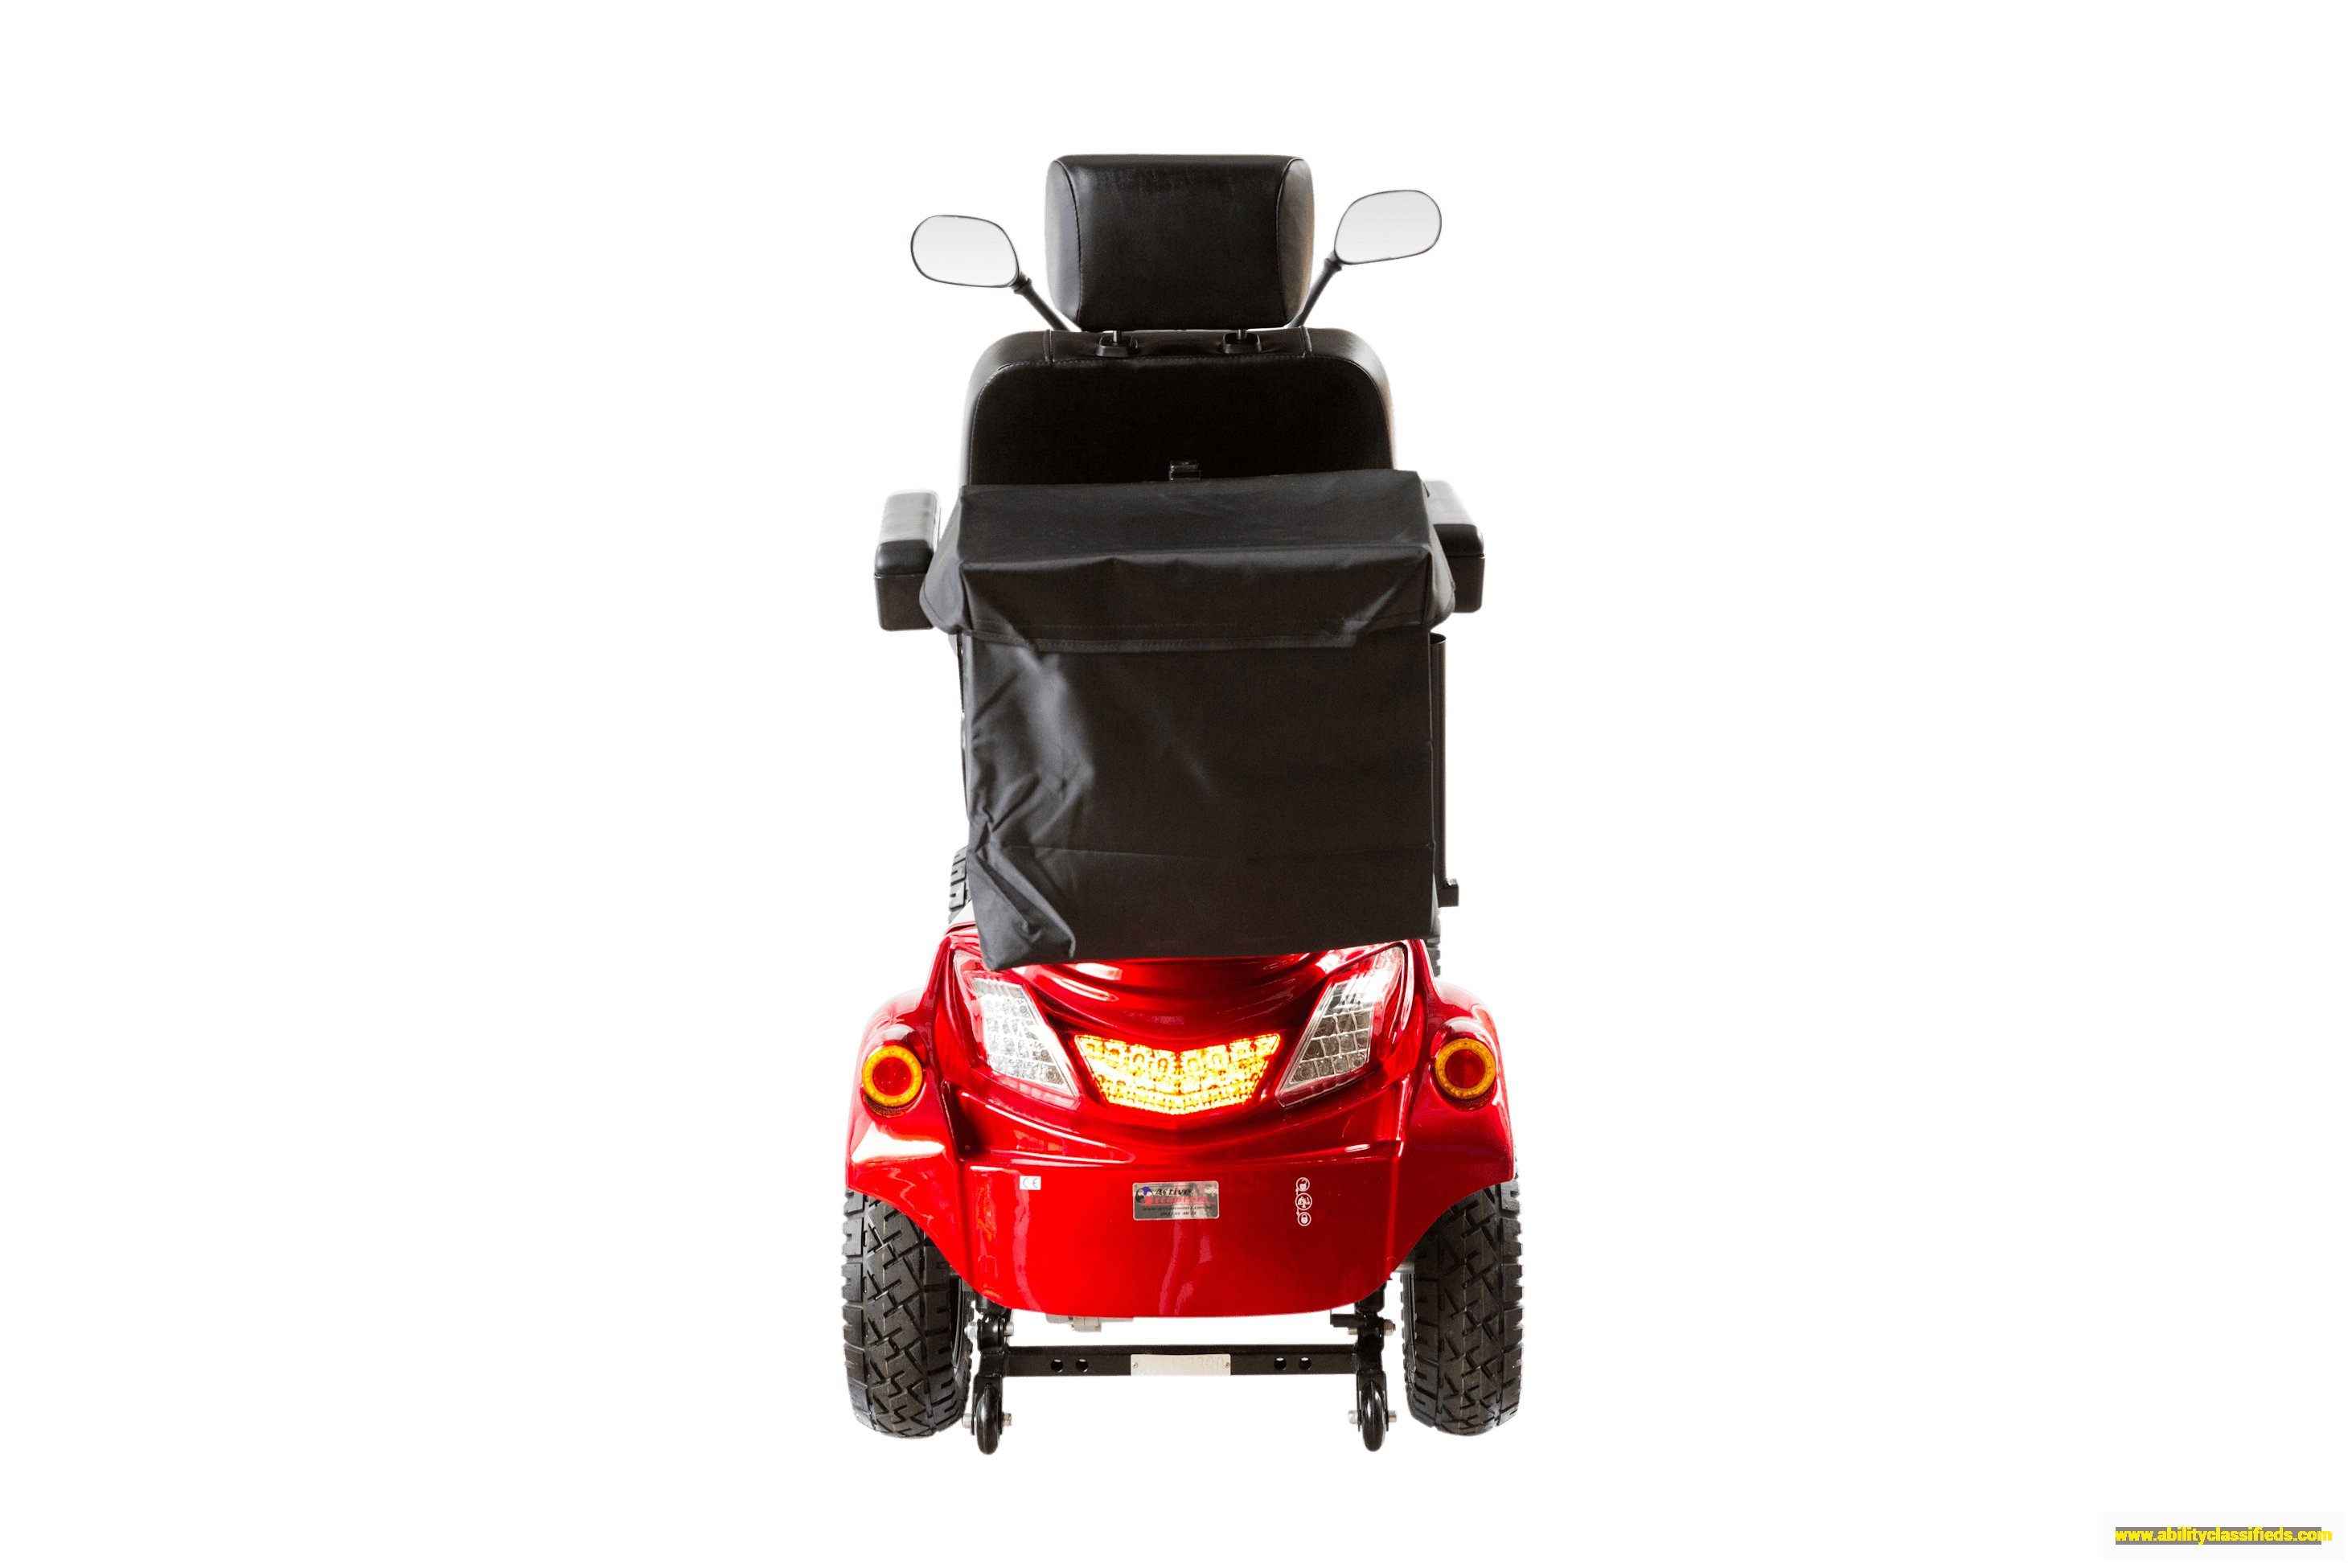 Deluxe Mobility Scooter – Model A90